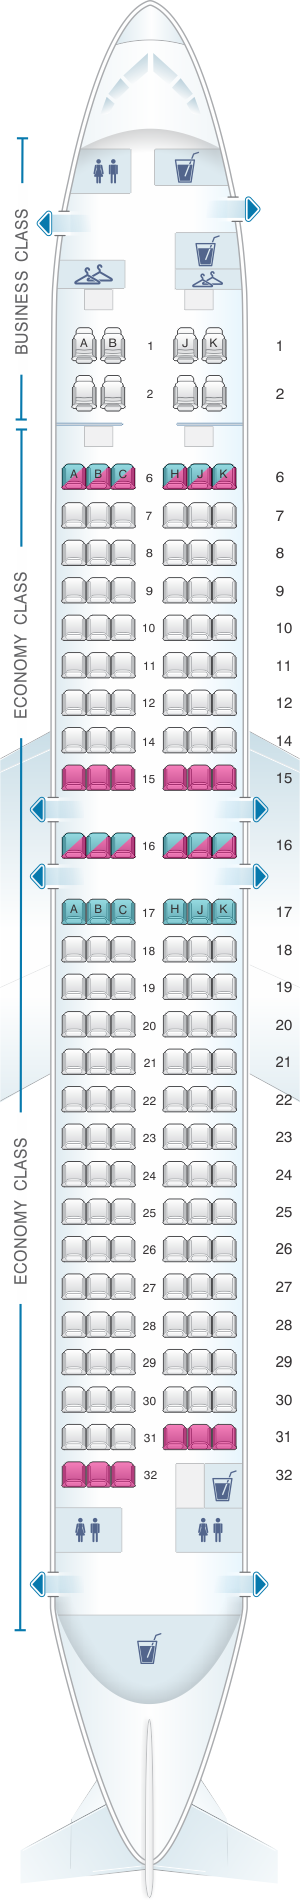 Seat map for China Airlines Boeing B737 800 Config.2